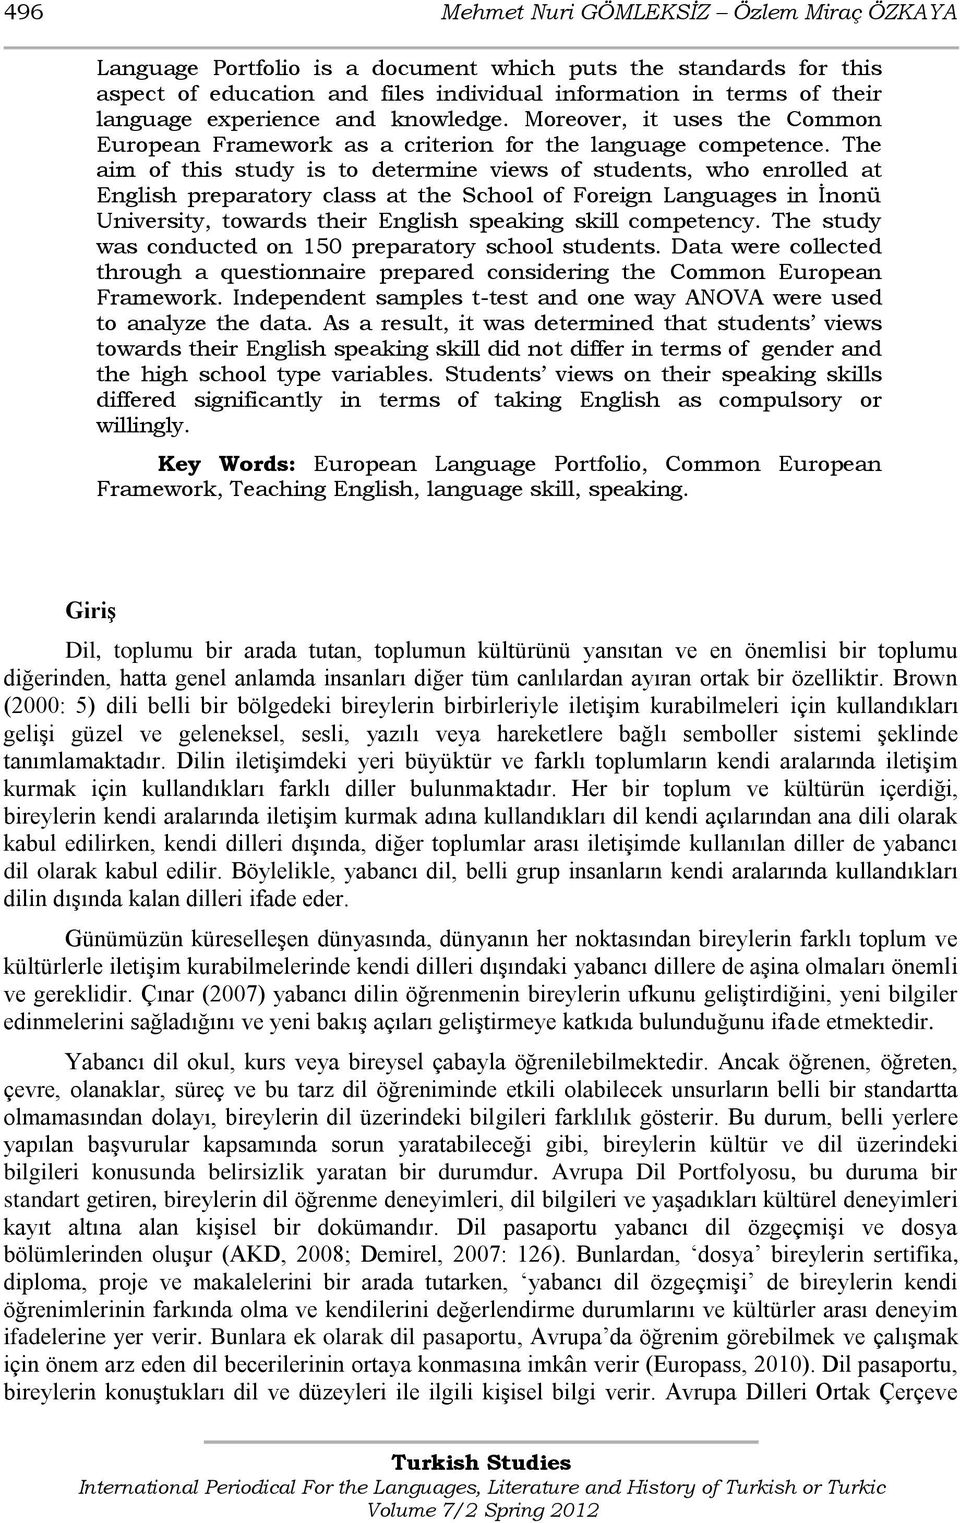 The aim of this study is to determine views of students, who enrolled at English preparatory class at the School of Foreign Languages in İnonü University, towards their English speaking skill